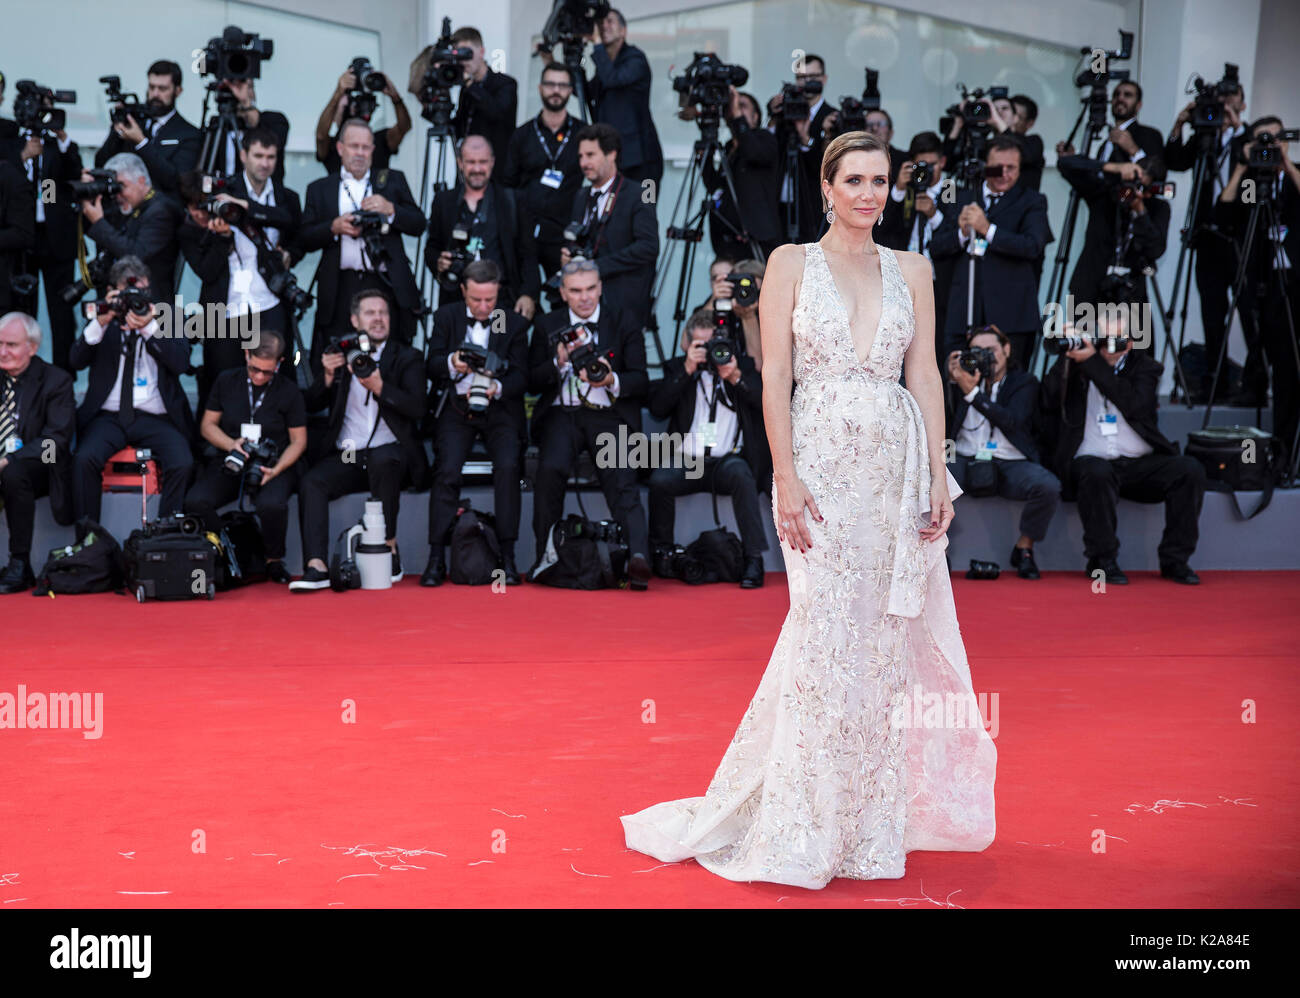 Venice, Italy. 30th Aug, 2017. Actress Kristen Wiig arrives on the red carpet of the premiere of the film 'Downsizing' which opens the 74th edition of the Venice Film Festival in Venice, Italy, on Aug. 30, 2017. The 74th edition of the Venice Film Festival lasts from Aug. 30 to Sept. 9. Credit: Jin Yu/Xinhua/Alamy Live News - Stock Image